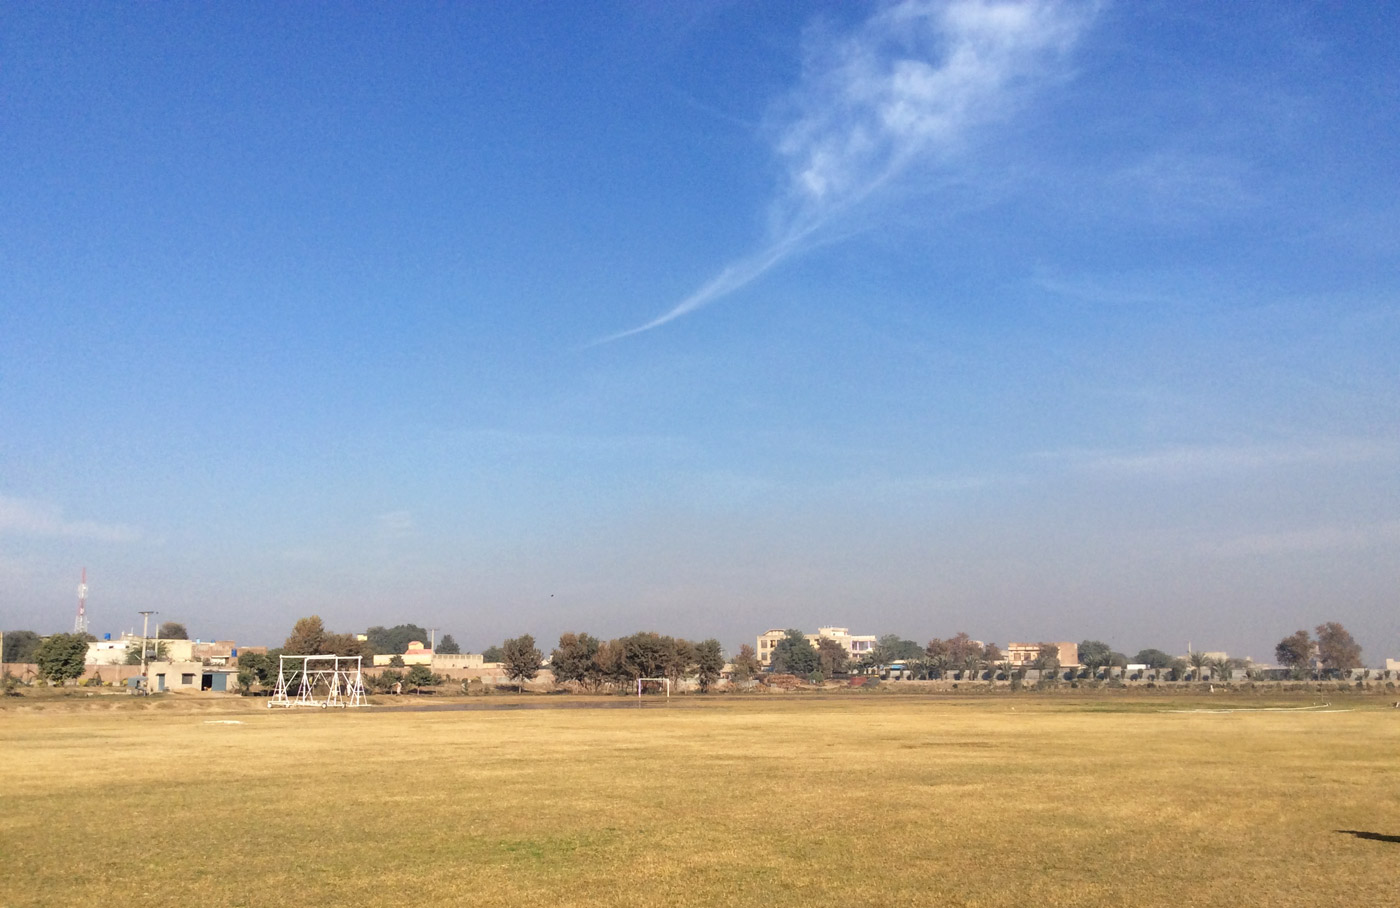 Rabwah's cricket ground was originally meant to be used for an annual Ahmadi religious event